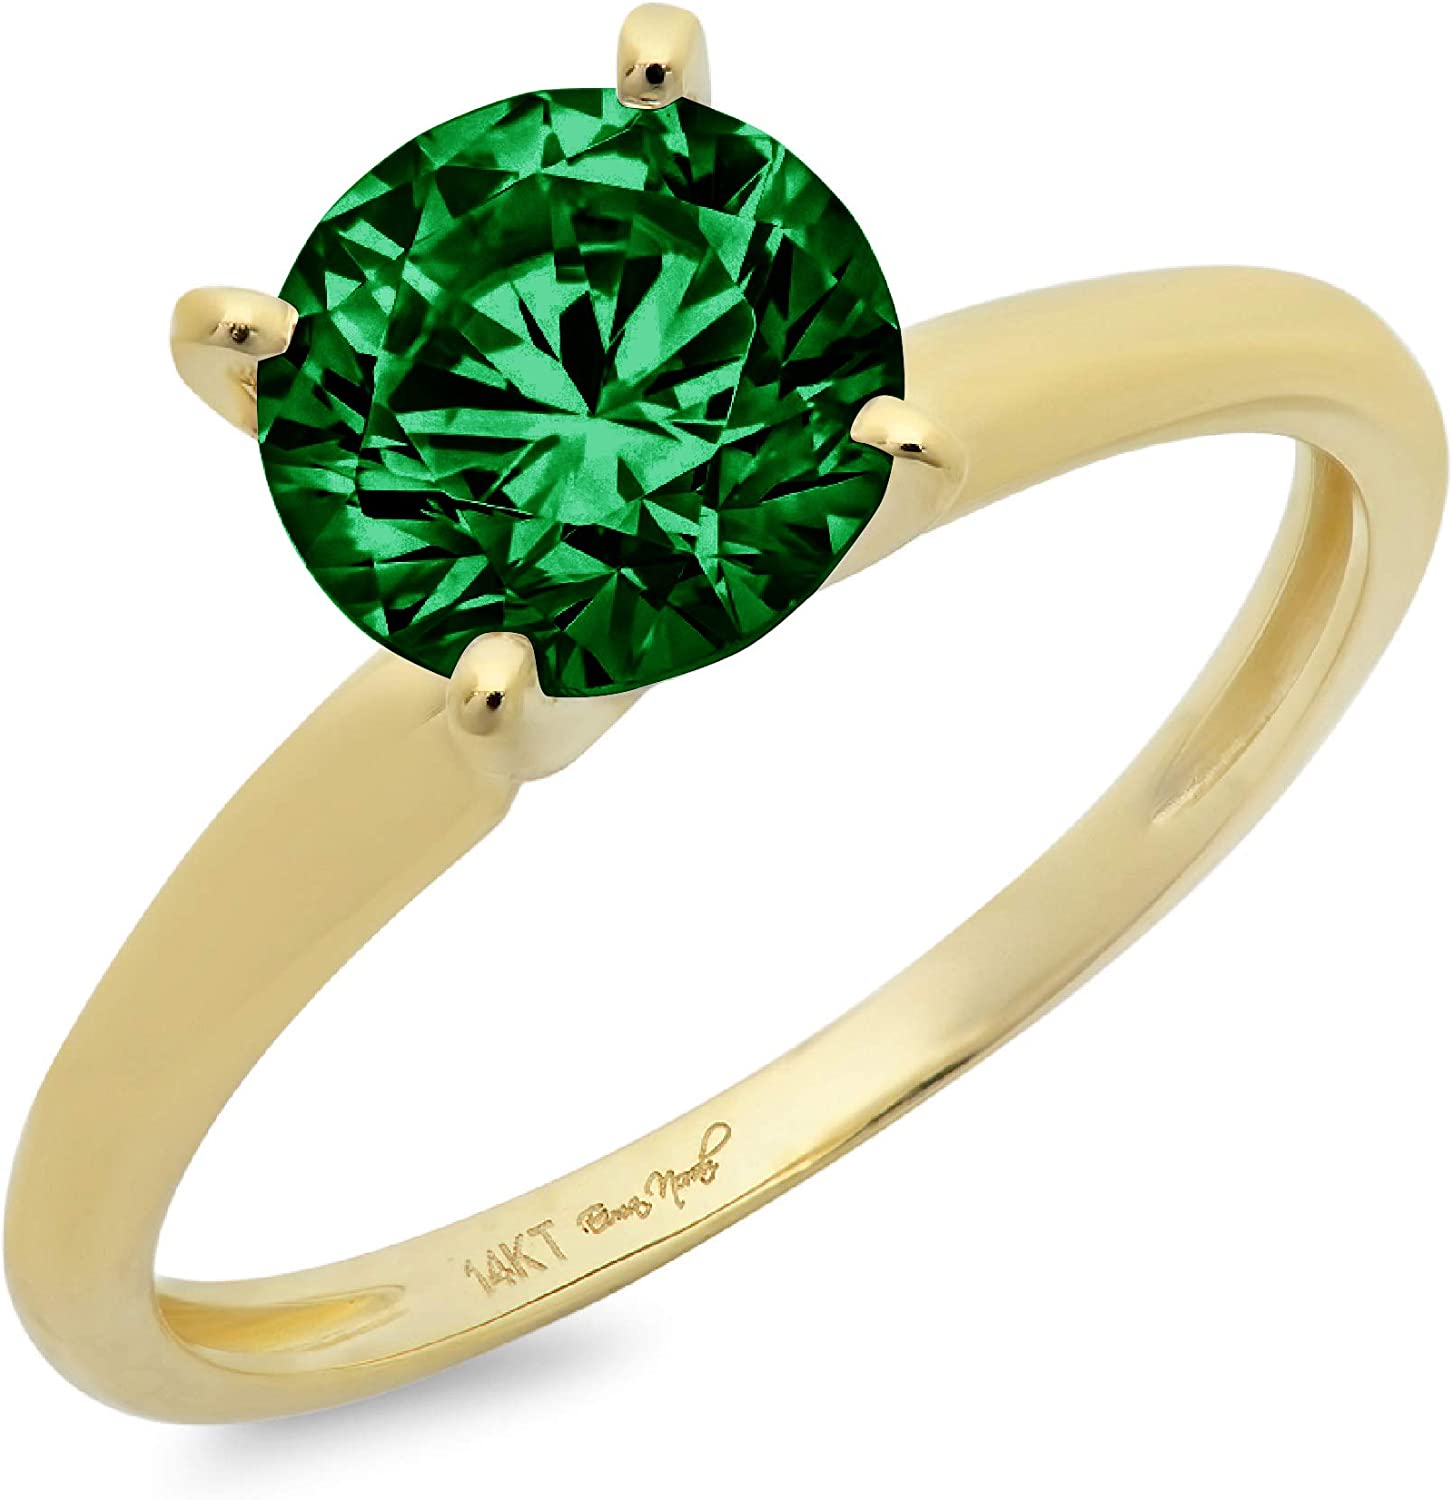 1.9ct Brilliant Round Cut Solitaire Flawless Simulated Cubic Zirconia Green Emerald Ideal VVS1 4-Prong Engagement Wedding Bridal Promise Anniversary Designer Ring in Solid 14k Yellow Gold for Women